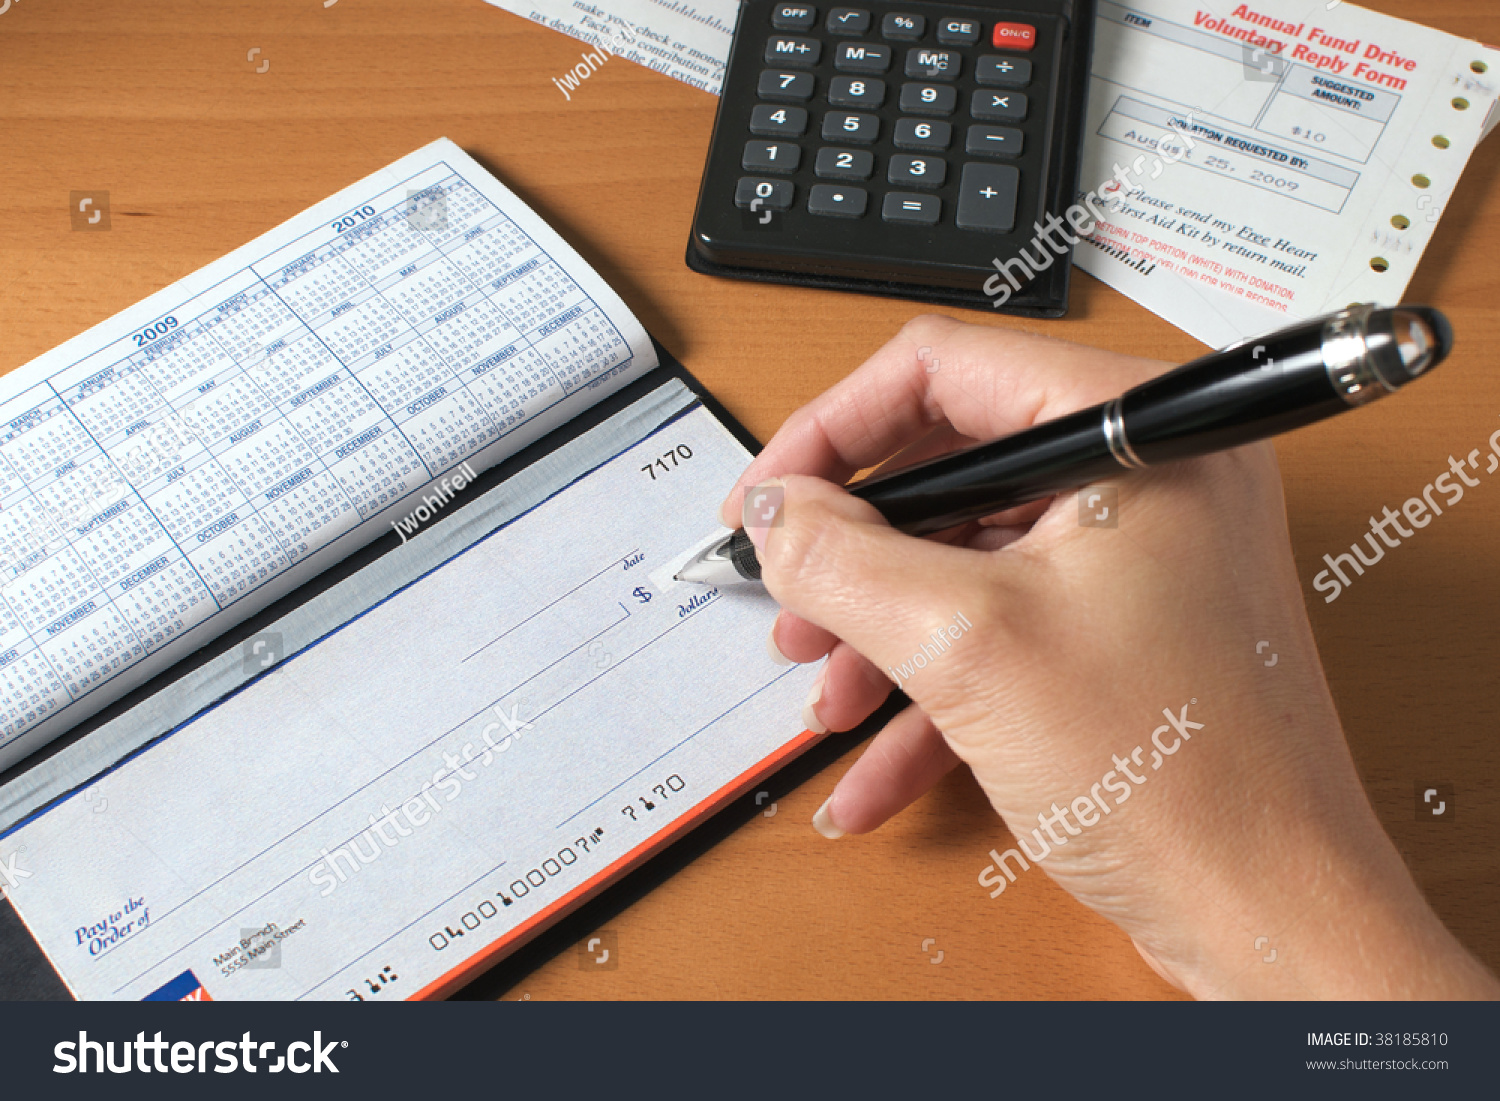 w s hand writing check pay bills stock photo  w s hand writing a check to pay the bills calculator and an invoice on